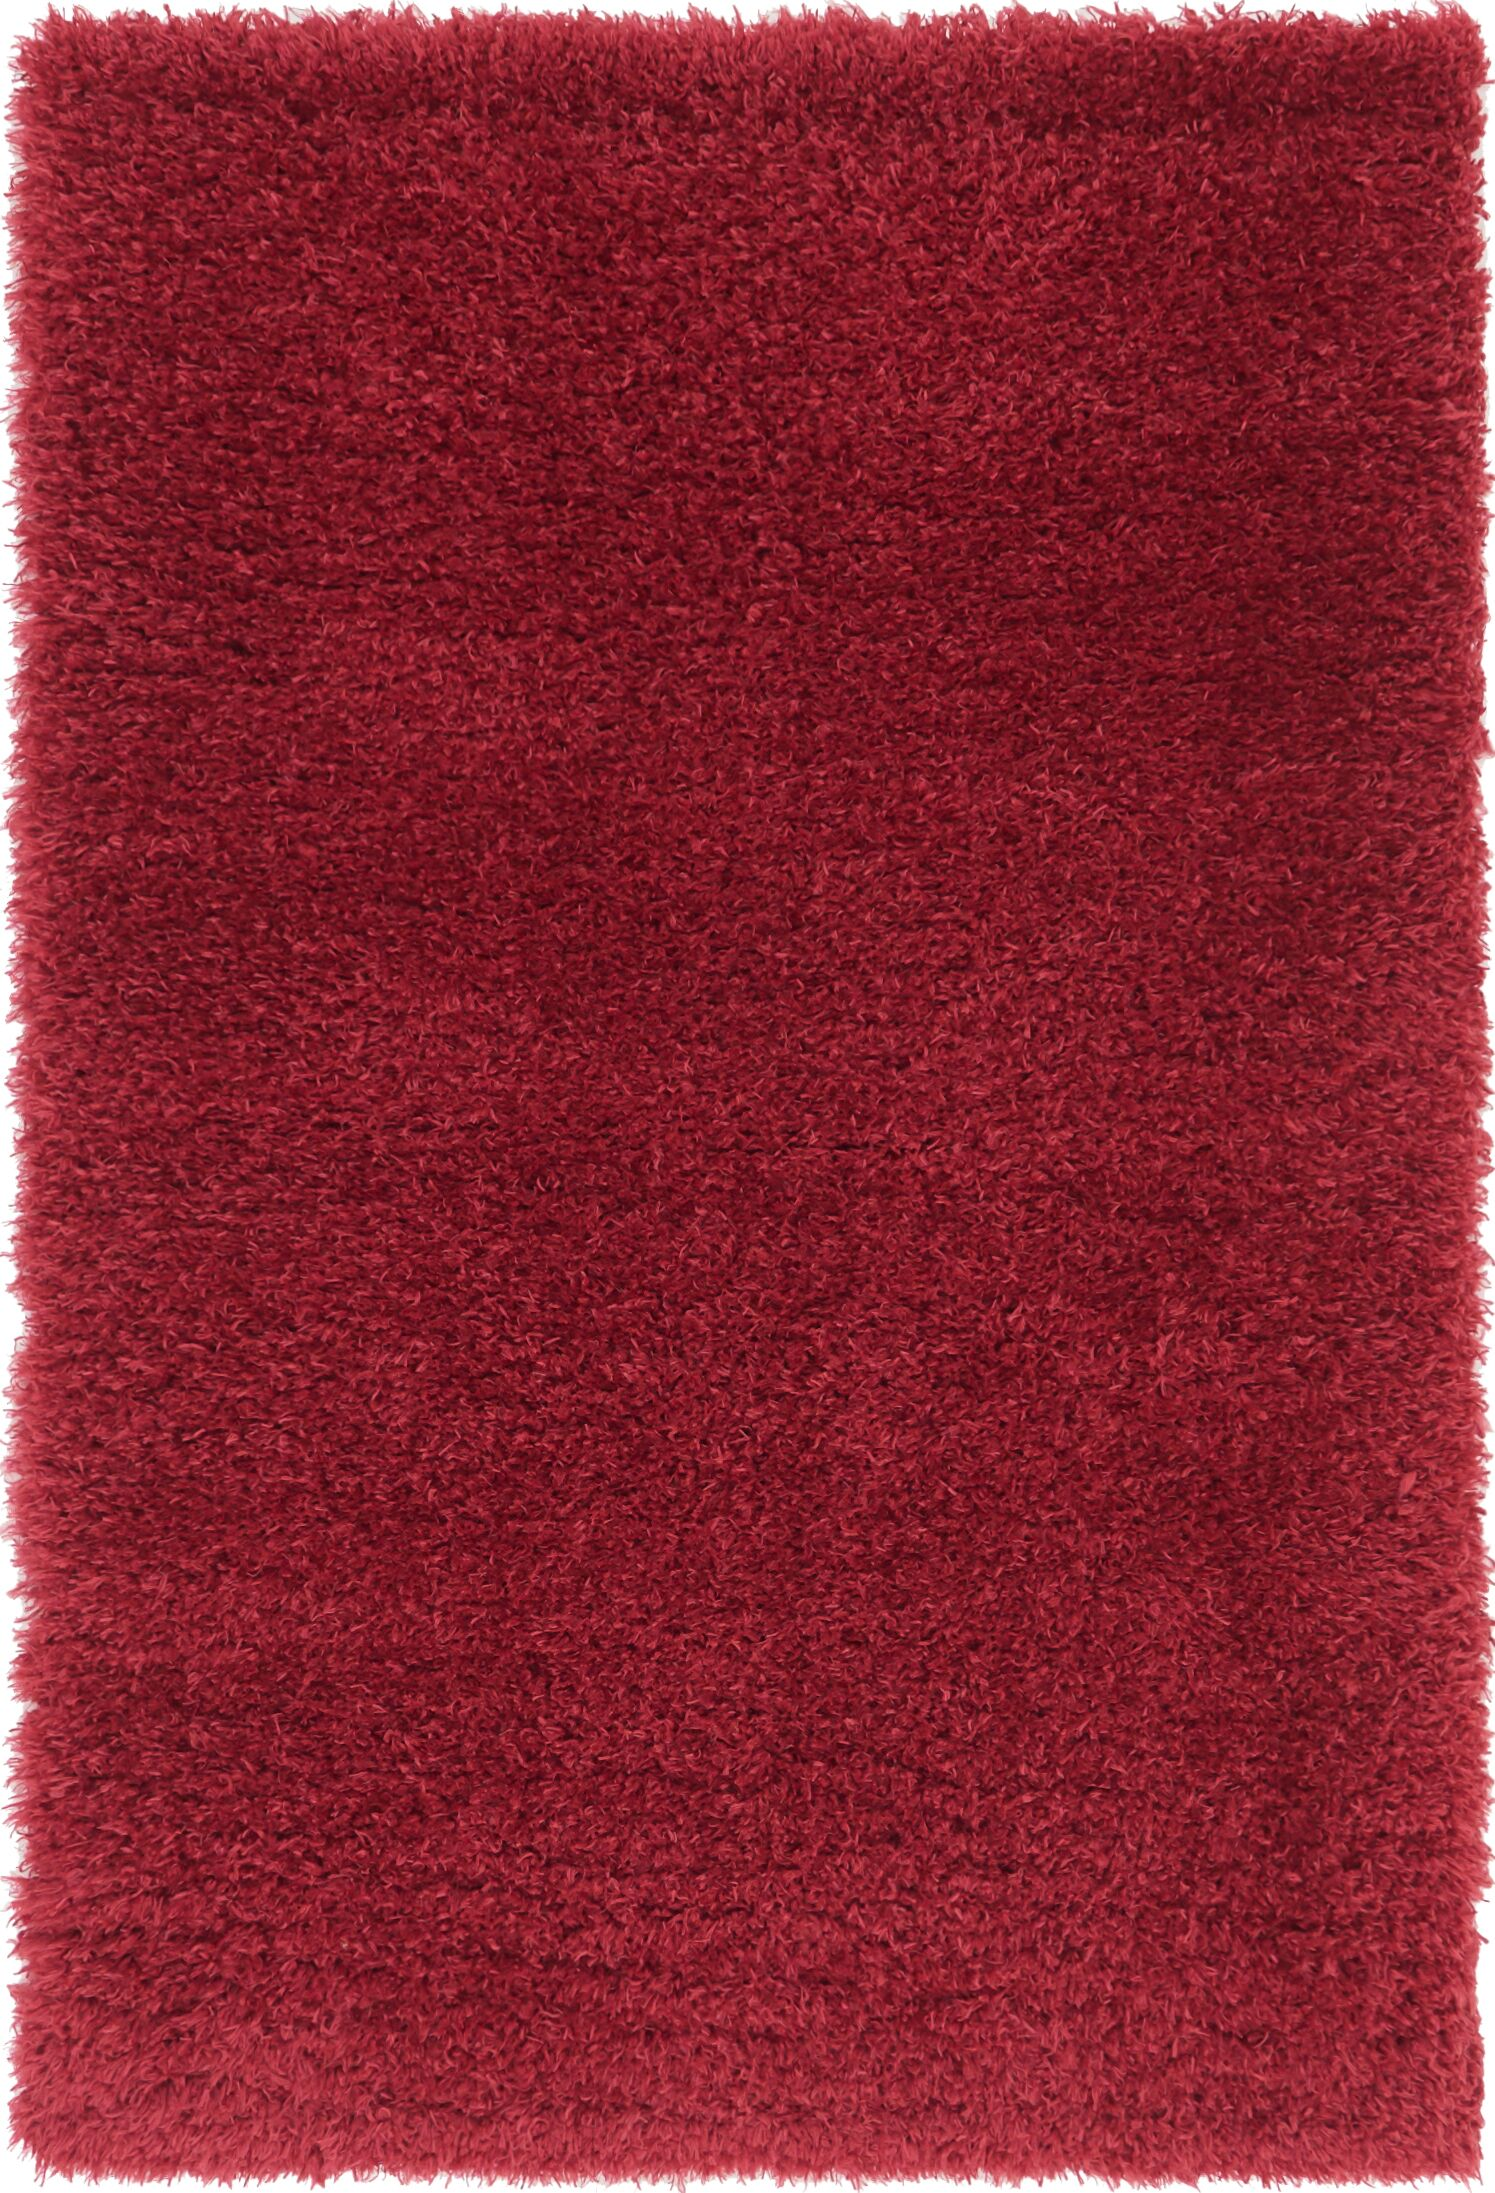 Red Area Rug Rug Size: 4' x 6'